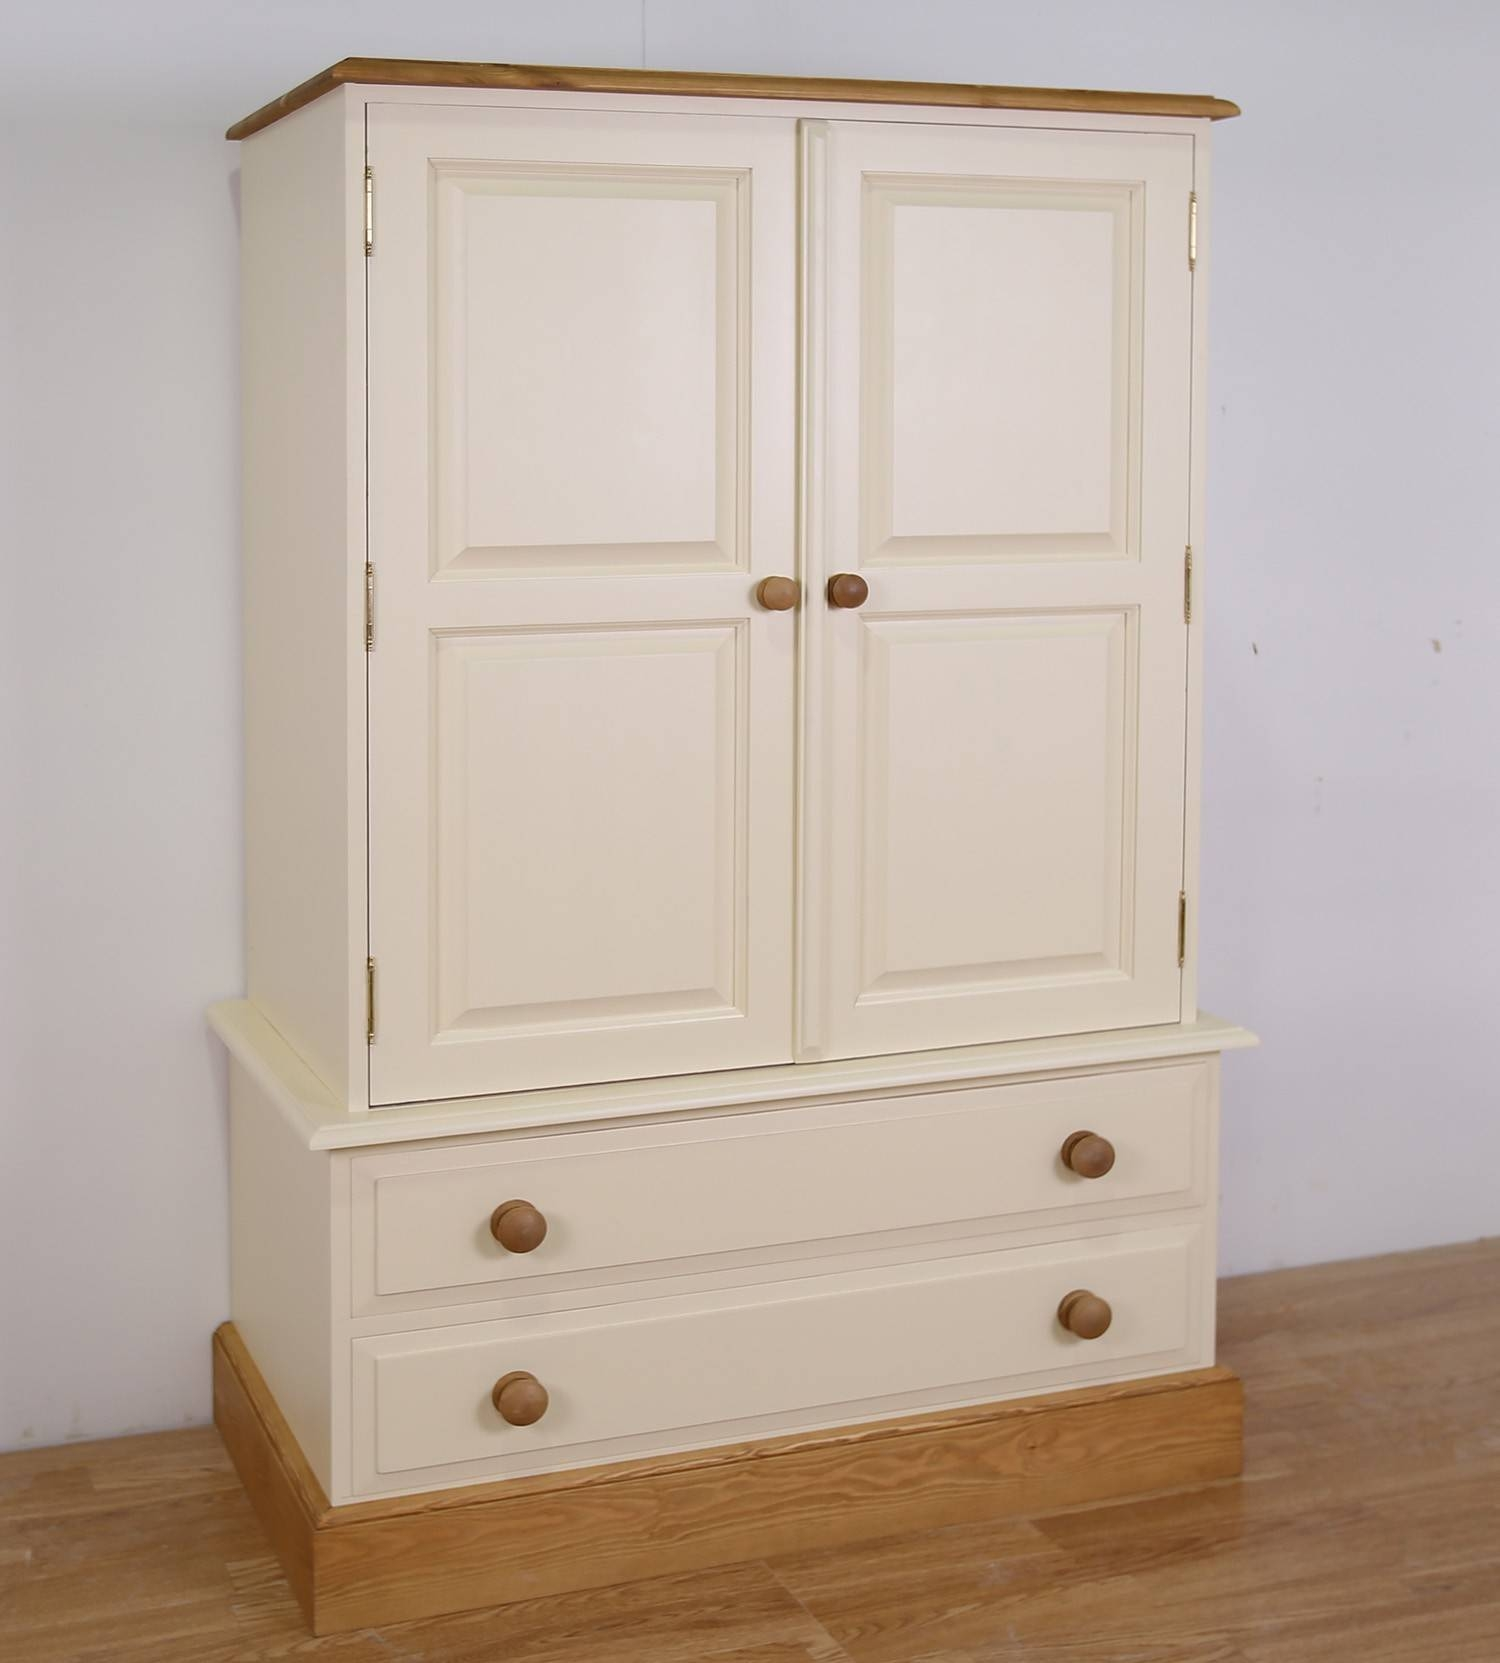 Farrow & Ball Painted Children's Wardrobe With Drawers throughout Painted Wardrobes (Image 3 of 15)